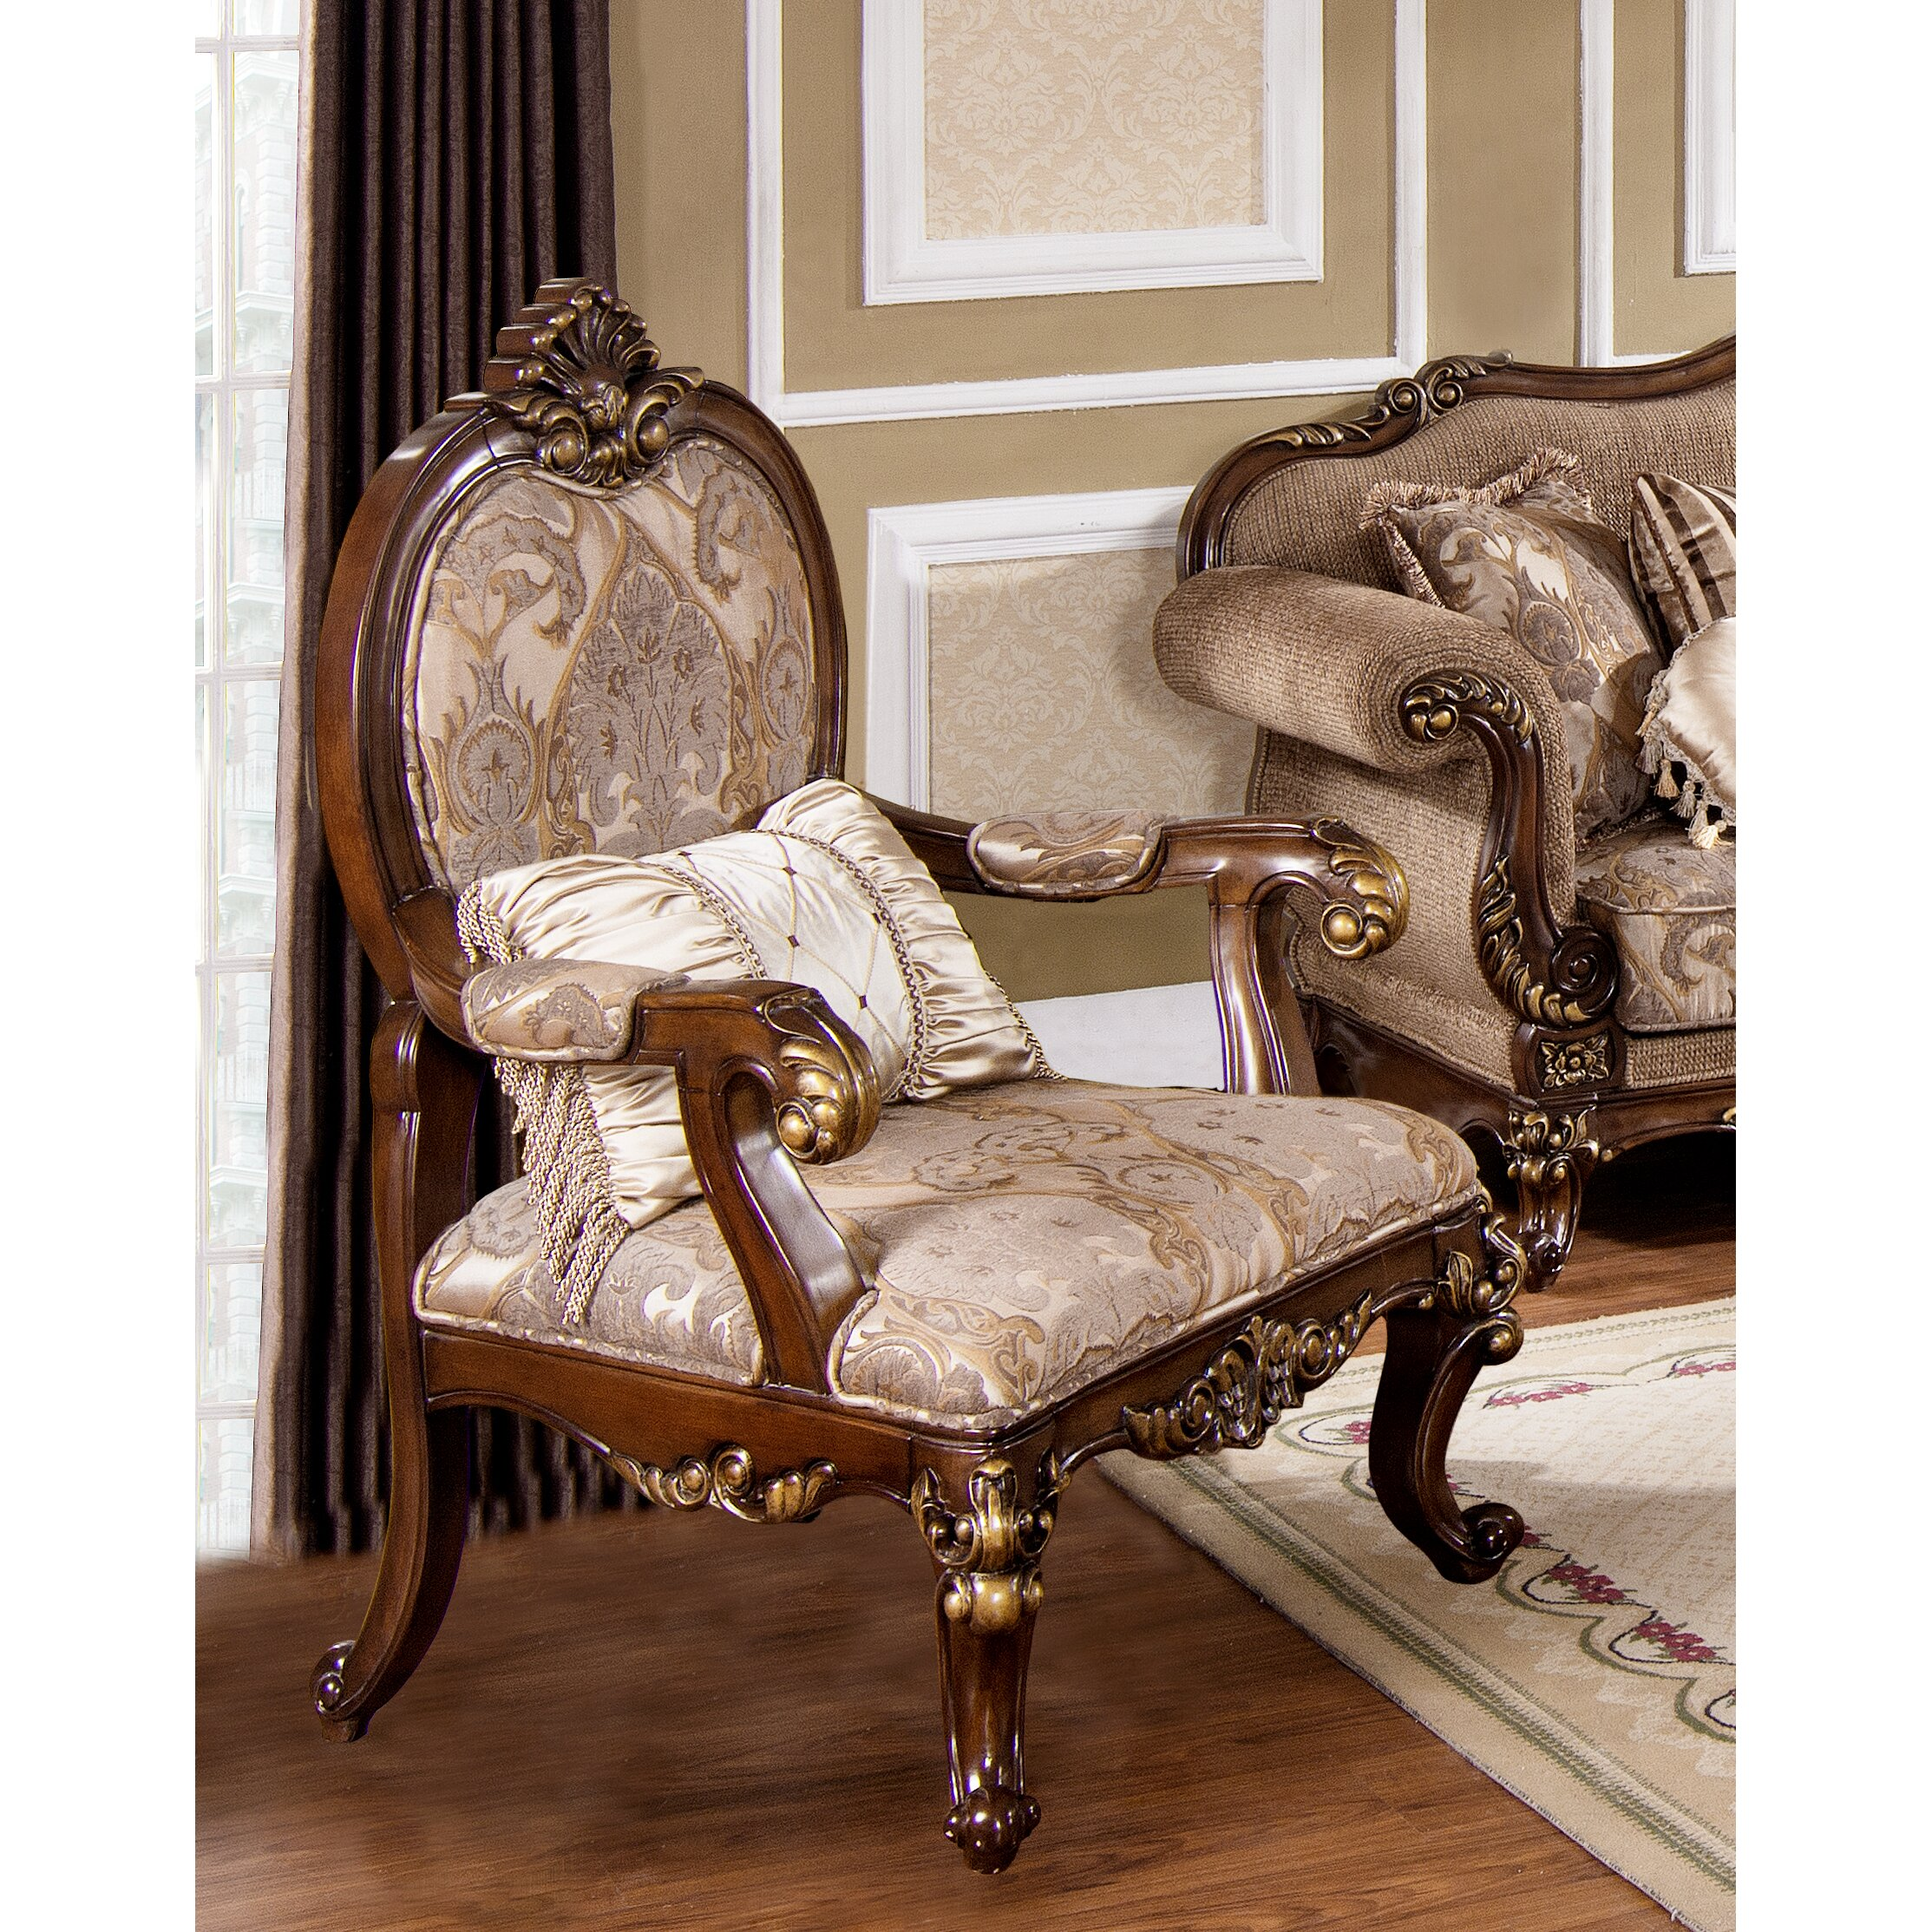 Traditional Chairs For Living Room Astoria Grand Fontainbleau Traditional Living Room Arm Chair